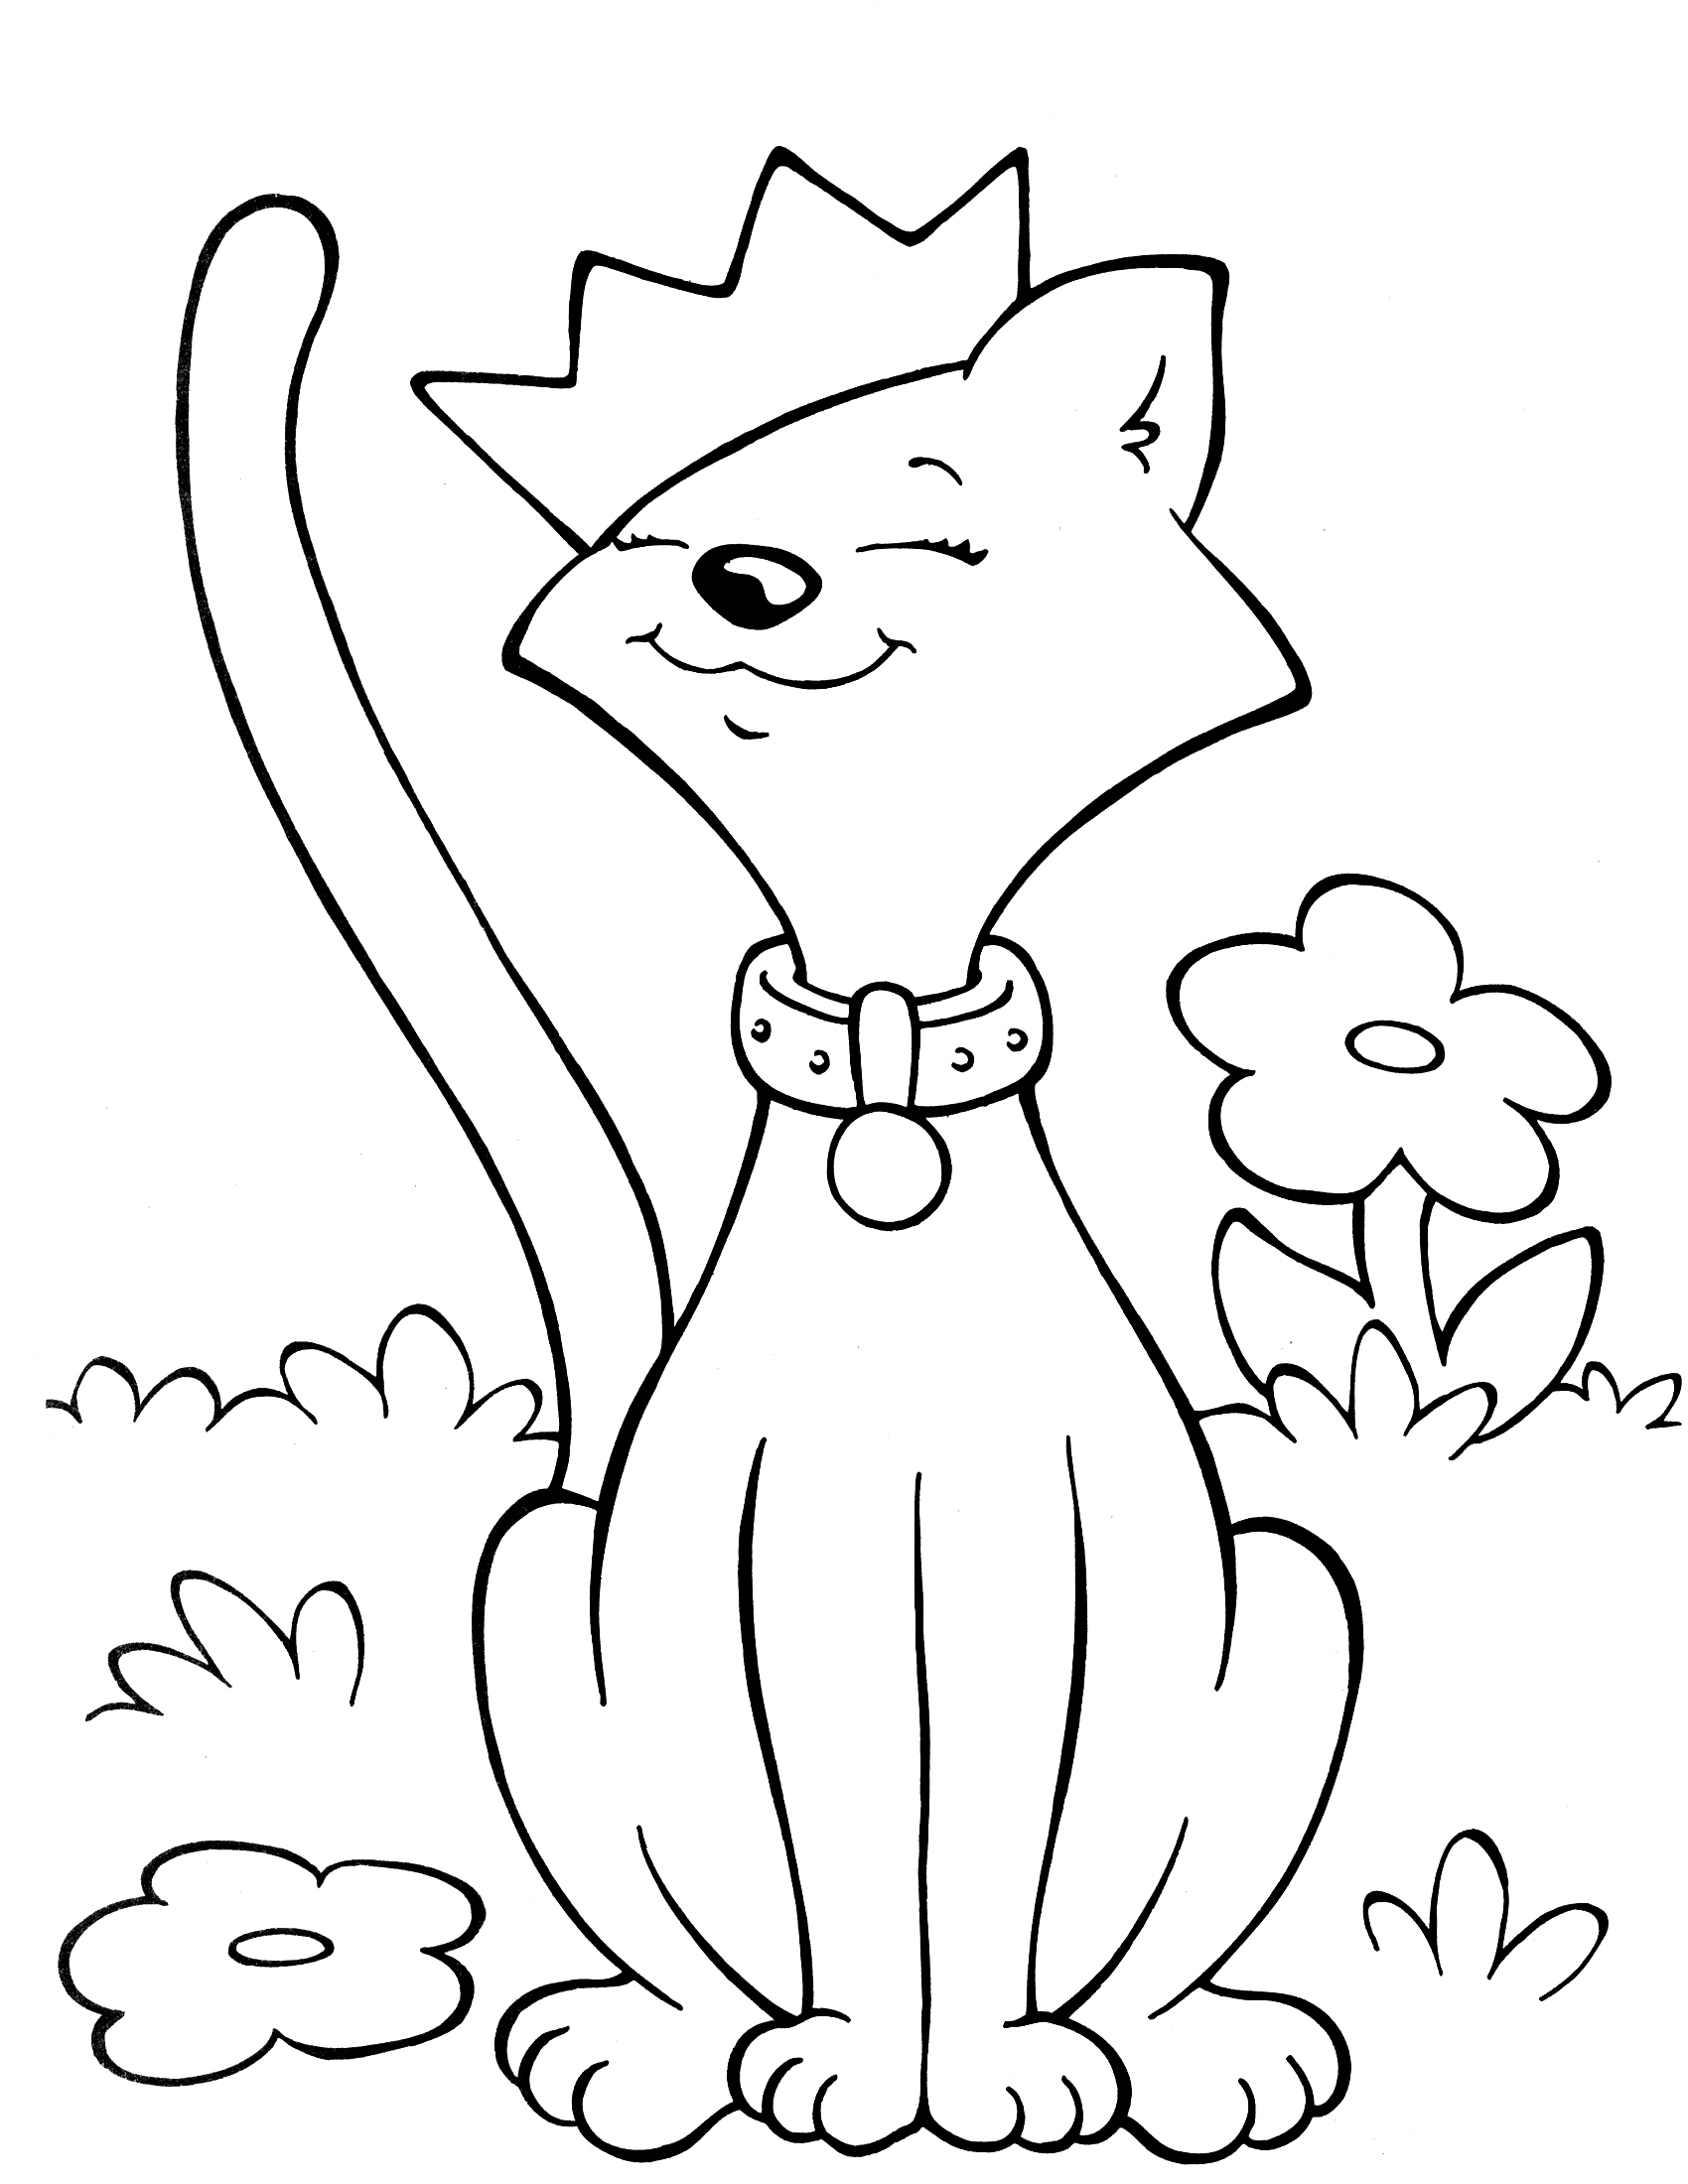 Crayola Fall Coloring Pages At Getcolorings